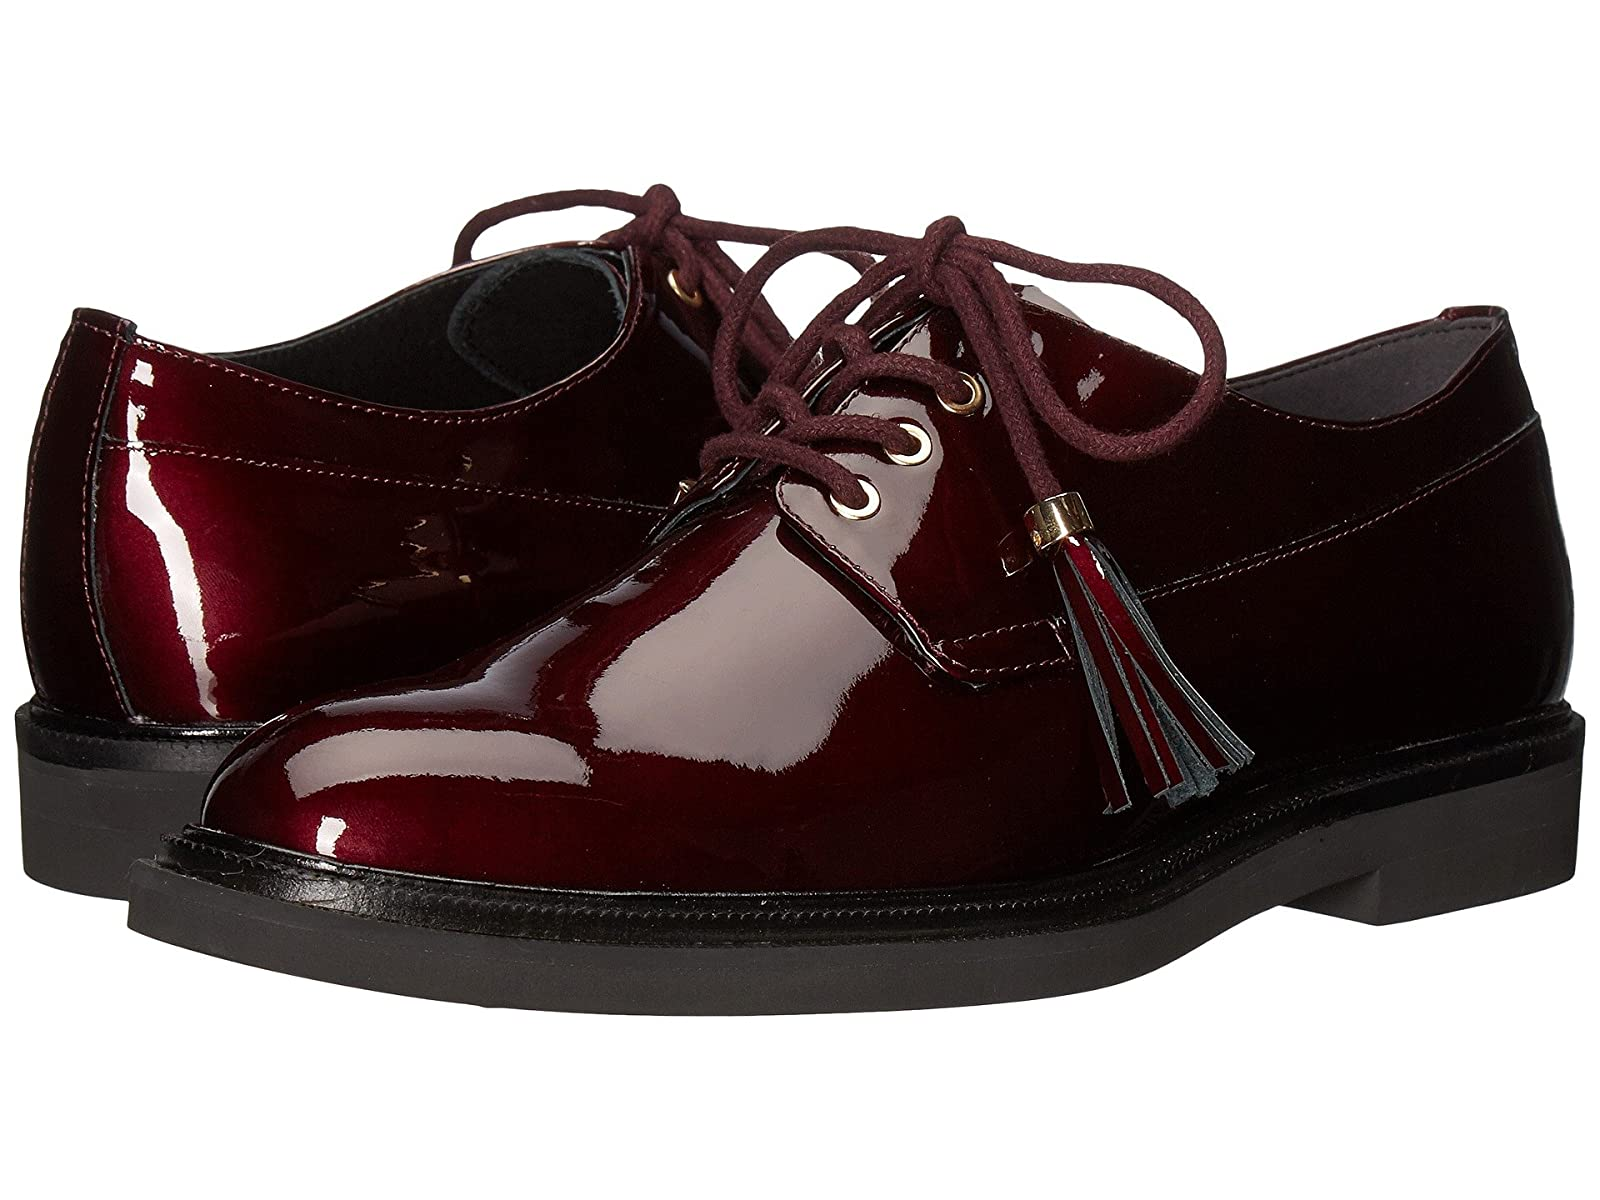 Kenneth Cole New York AnnieCheap and distinctive eye-catching shoes